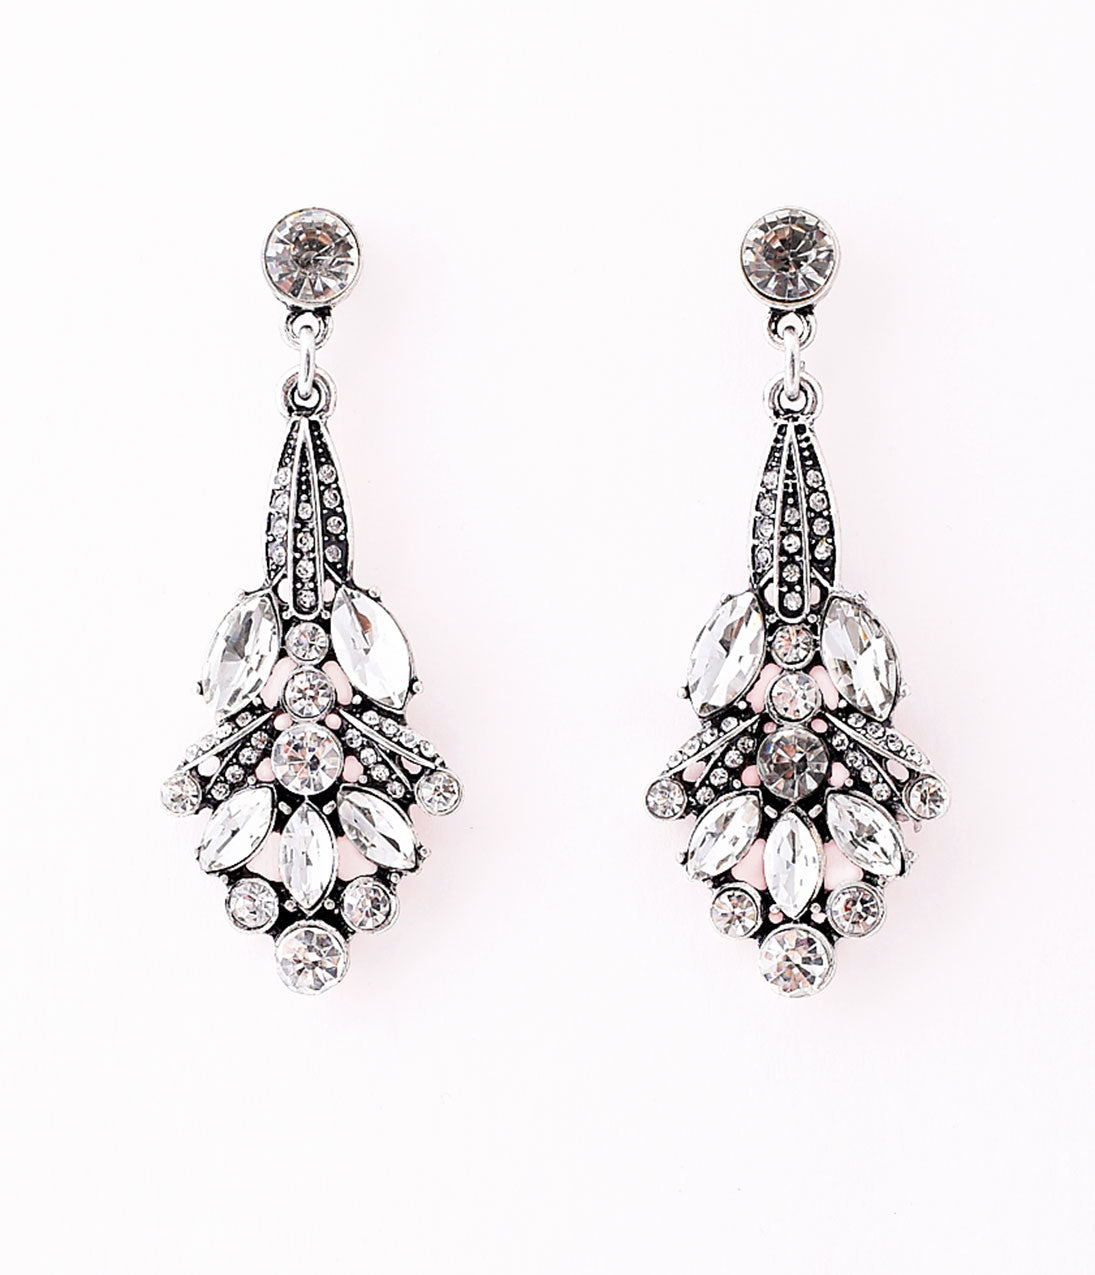 1920s Gatsby Jewelry- Flapper Earrings, Necklaces, Bracelets 1920S Style Silver Rhinestone Nouveau Flower Drop Earrings $34.00 AT vintagedancer.com